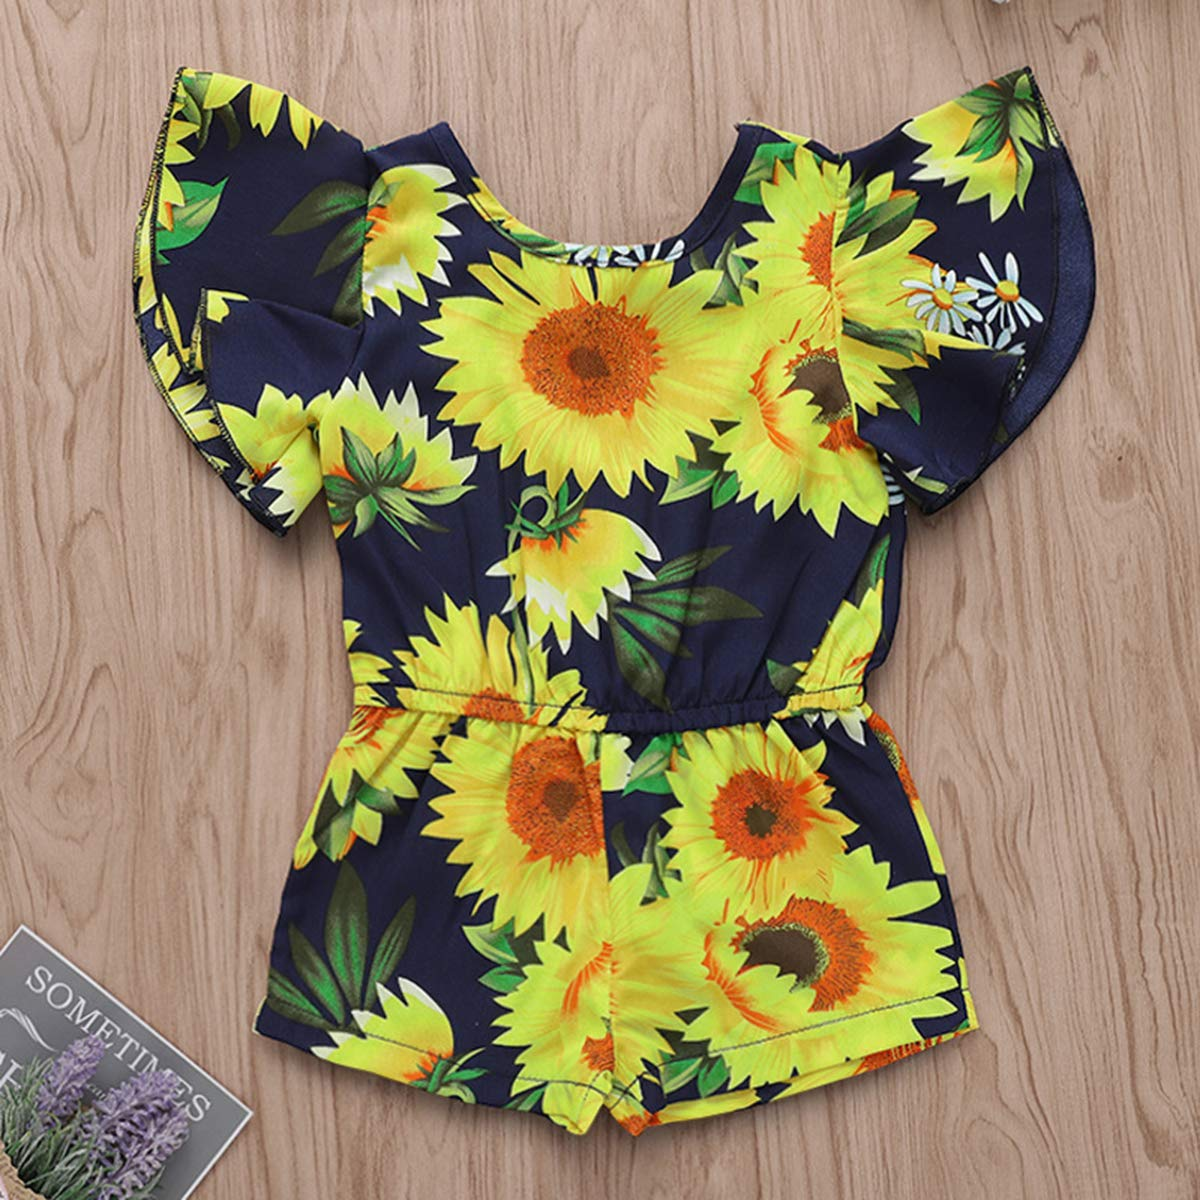 YOUNGER TREE Kids Toddler Baby Girls Summer Outfit Sunflower Backless/Overall Romper Jumpsuit Sunsuit Short Trousers Clothes